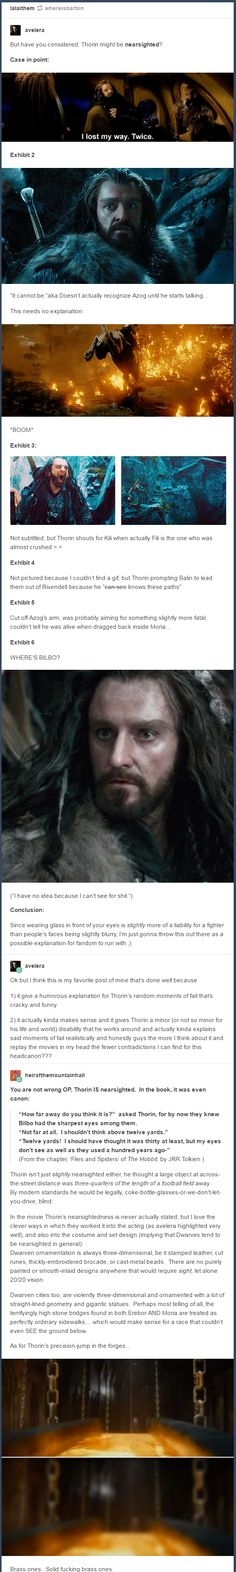 0365da779d5 Thorin is nearsighted. Every so often Peter Jackson makes me so happy that  I forgive